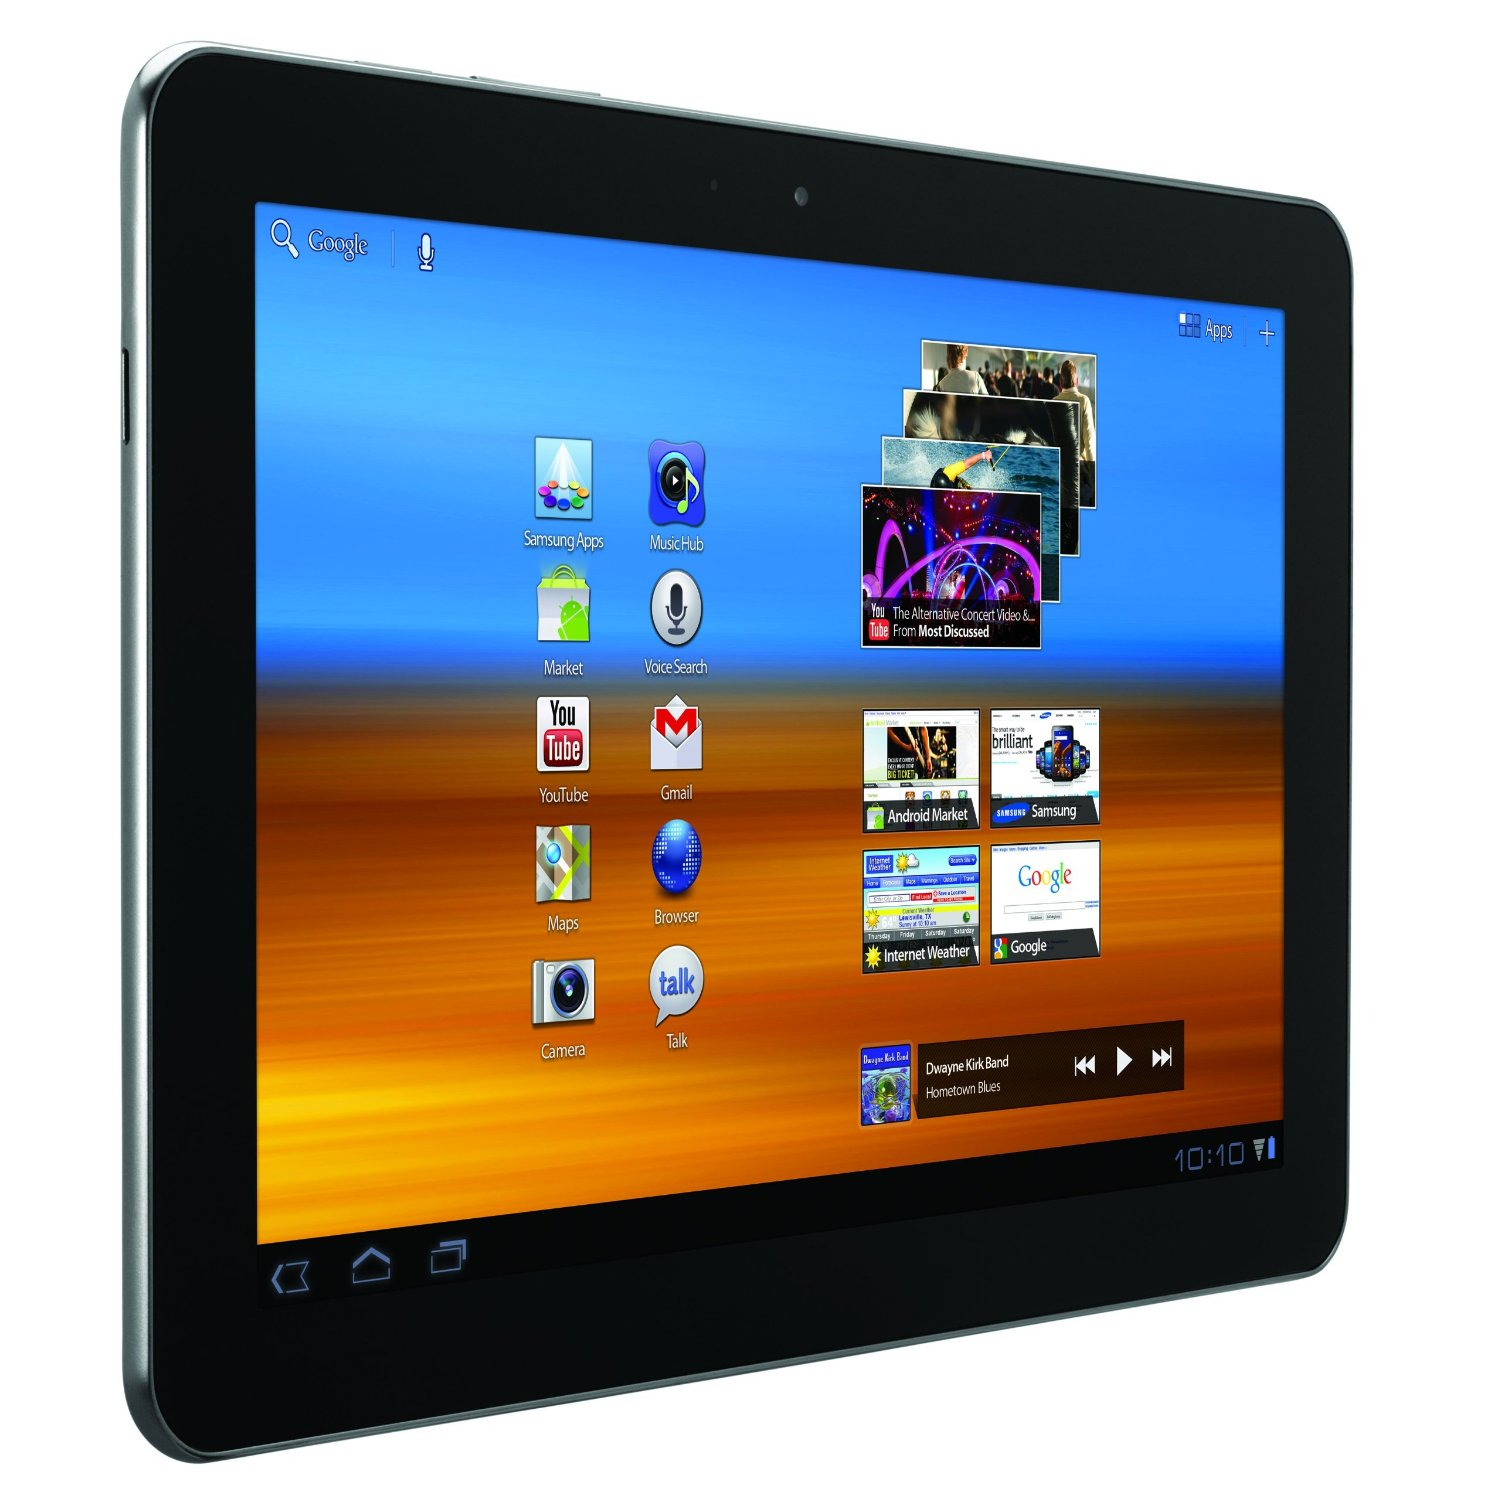 Galaxy Tab 10.1: the Best Android Tablet on the Market